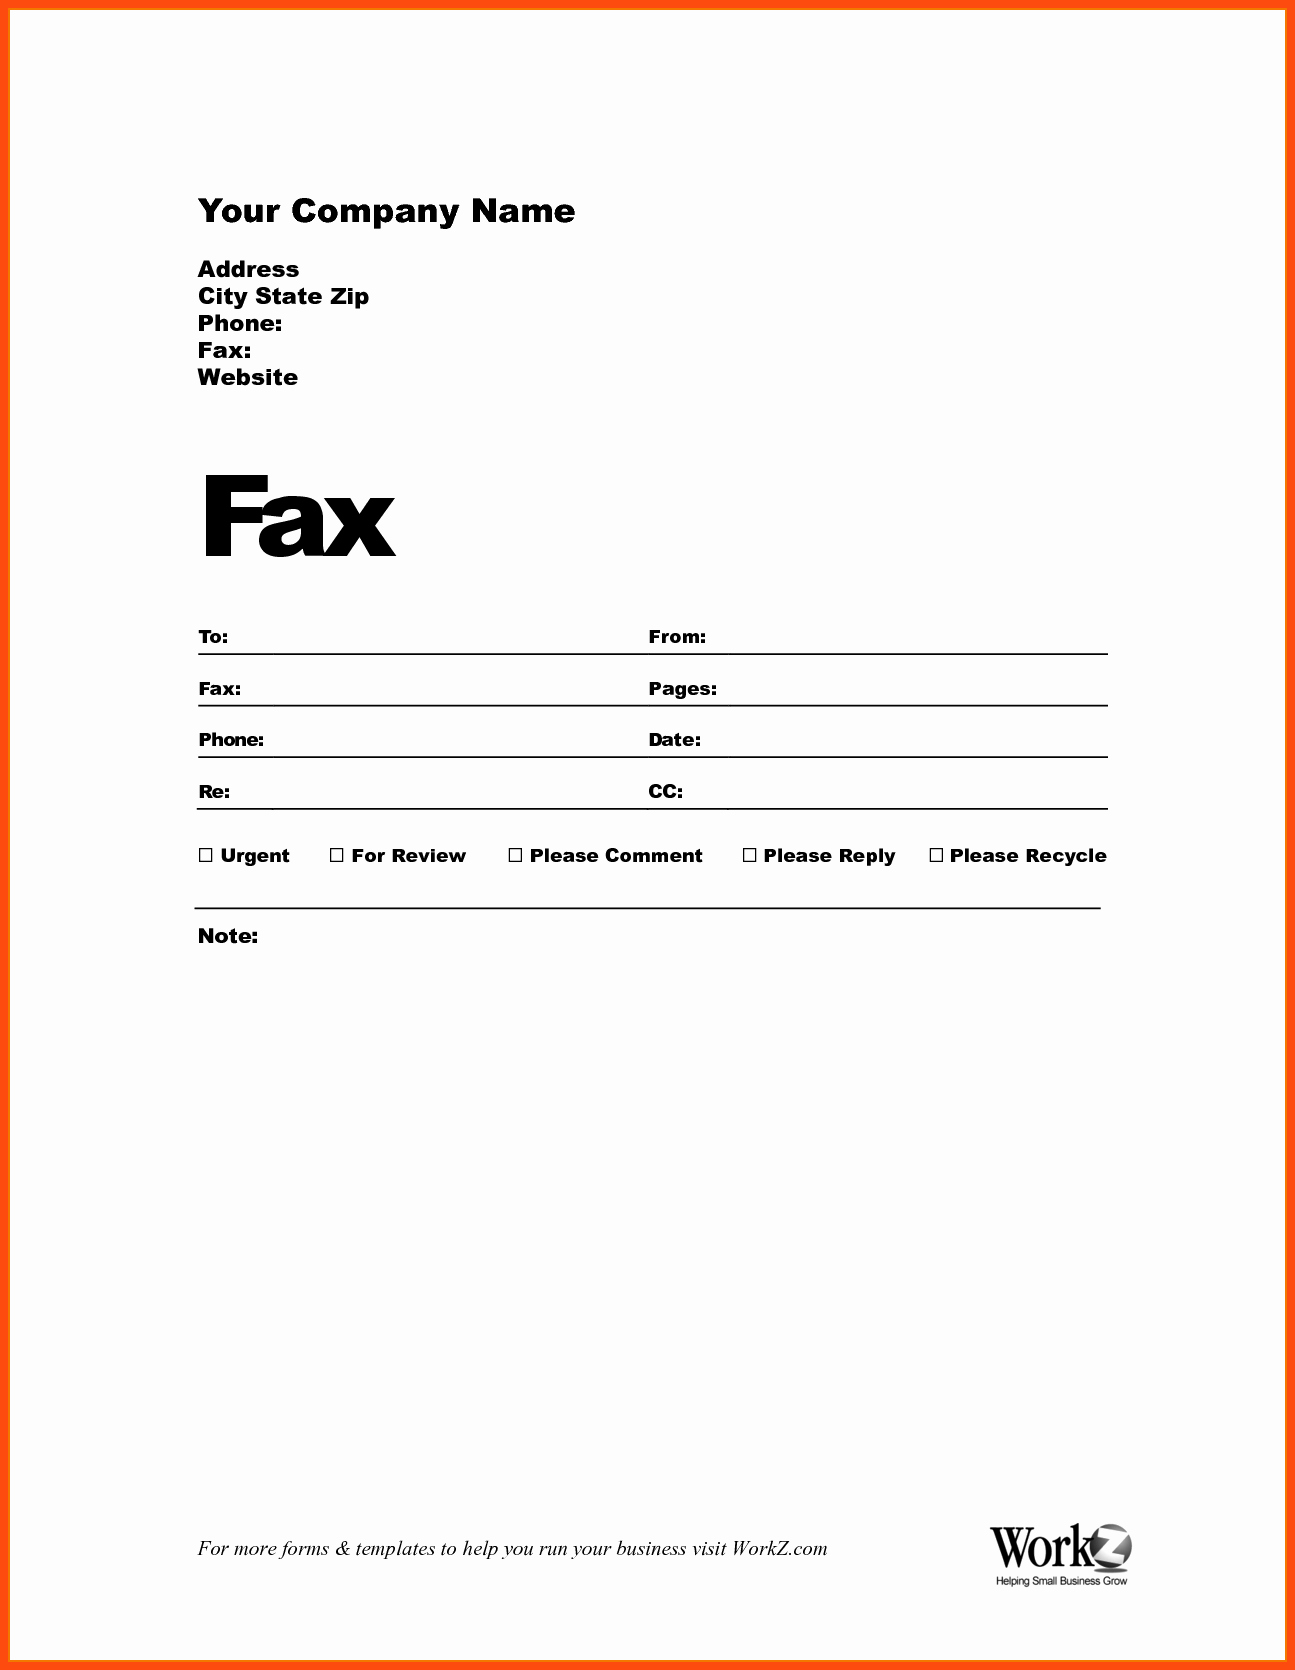 Cover Letter Template for Pages Beautiful How to Fill Out A Fax Cover Sheet